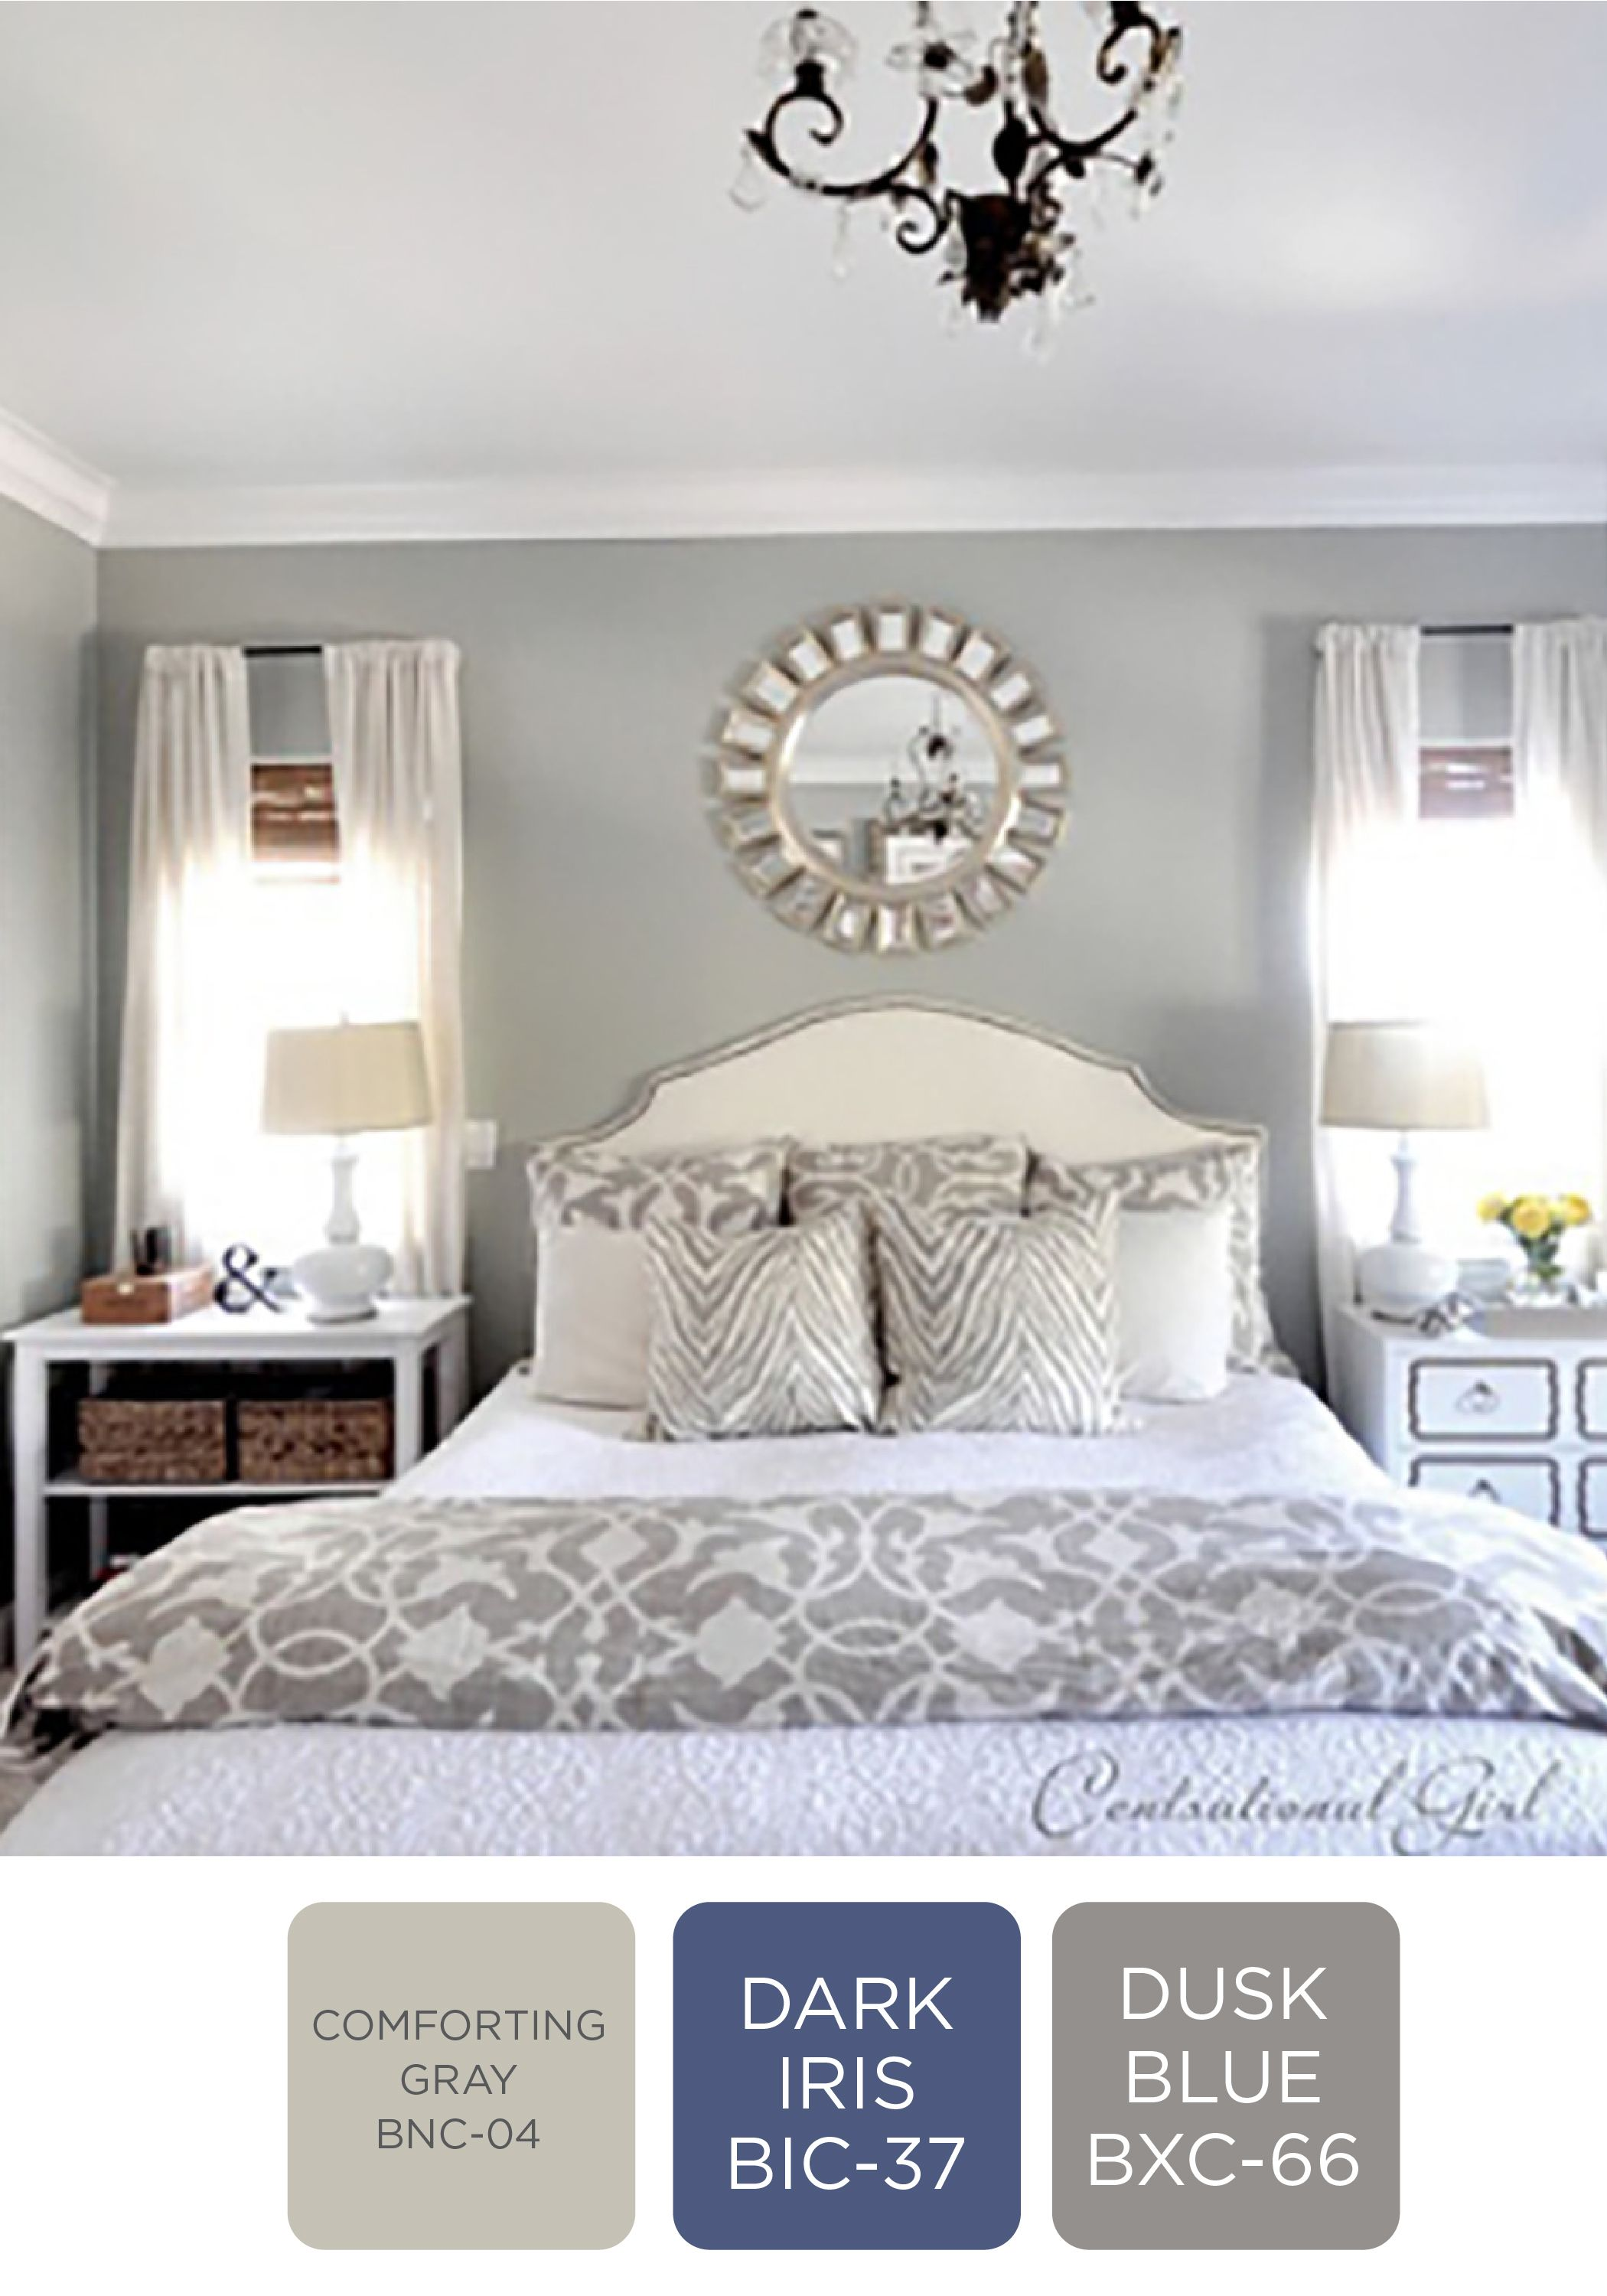 cozy greys gray and black rooms bedroom decor behr 15464 | 99f5827116a34a48544ef1e04b107a46